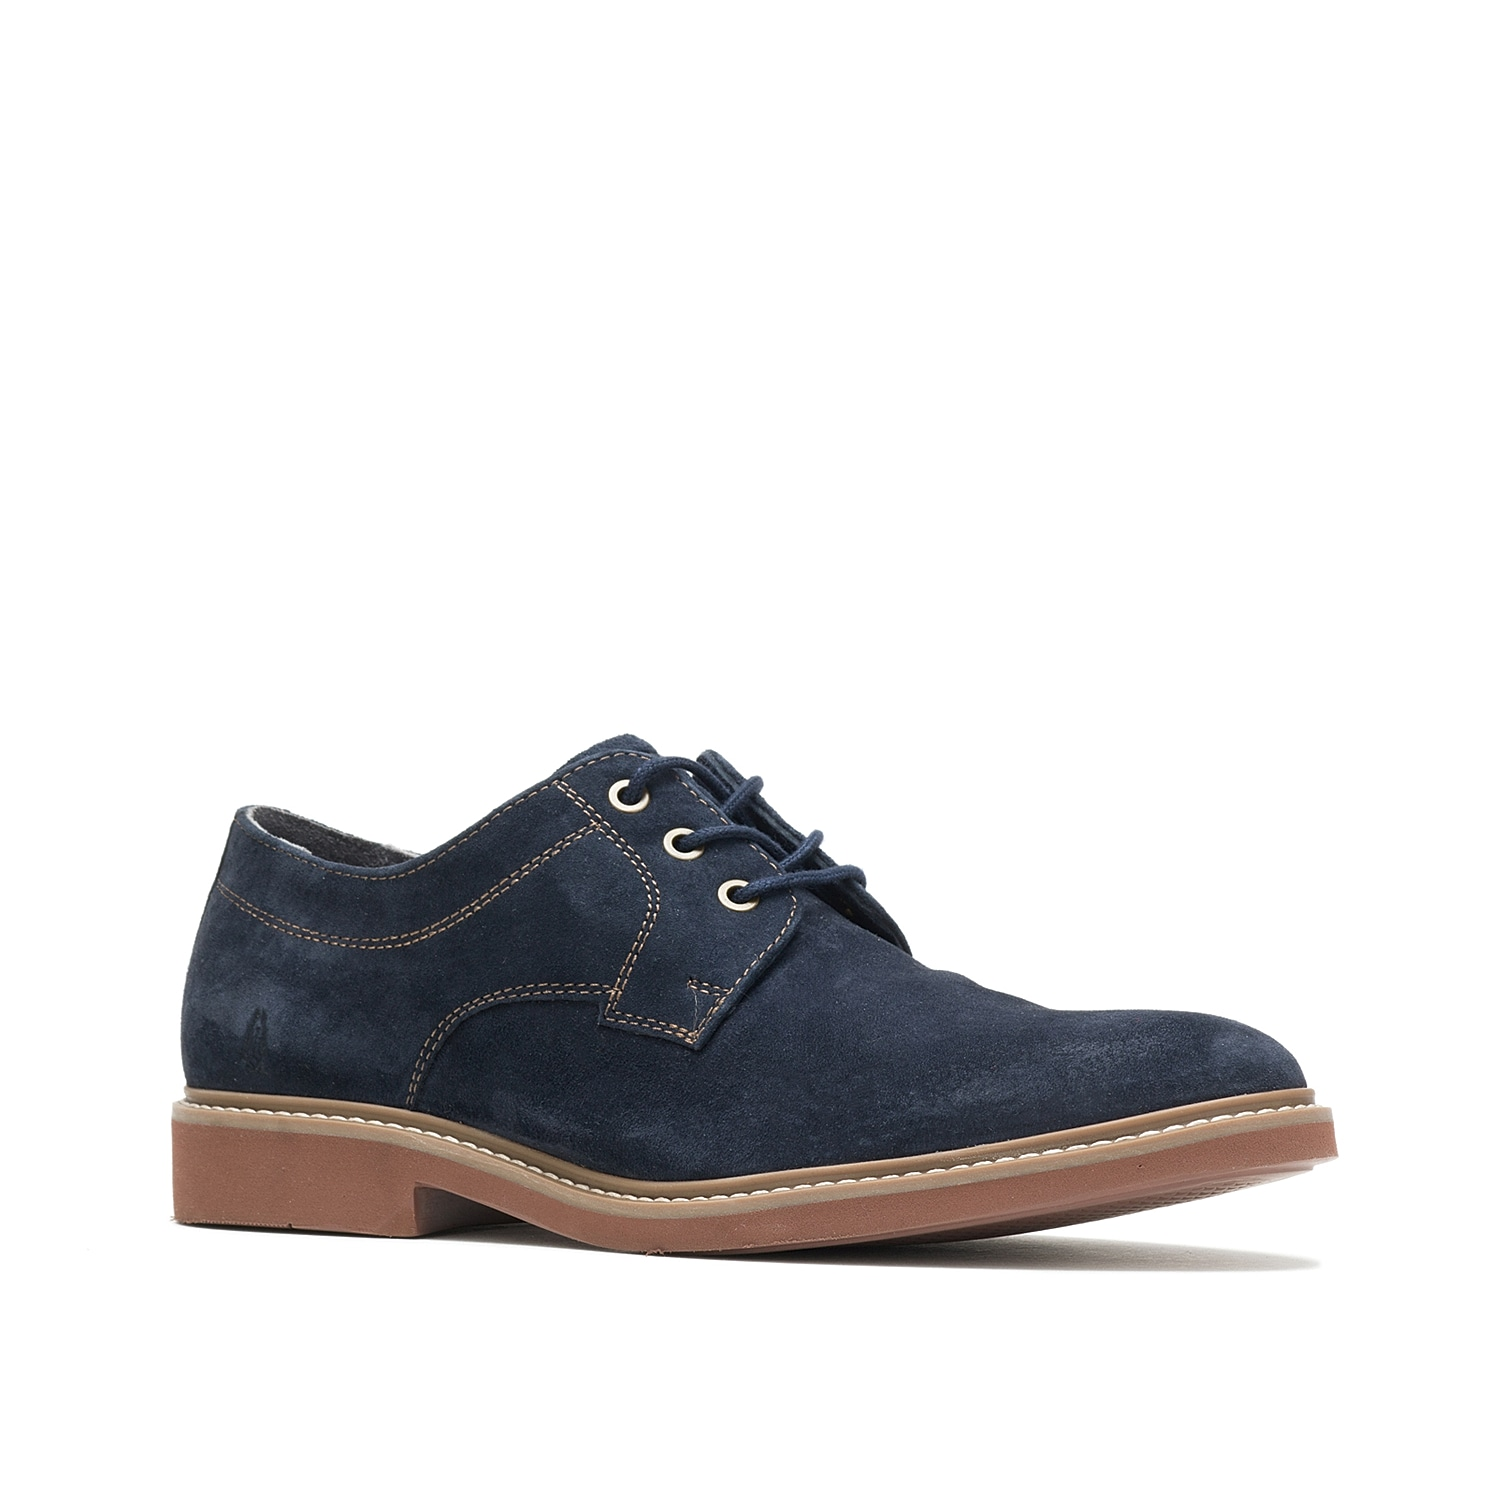 The Detroit oxford from Hush Puppies is a mixture of classic features with modern comfort. This lace-up is extremely comfortable, thanks to its Strobel construction from WorryFree¿ water-resistant leather, Bounce¿ footbed and anti-fraying sock lining.